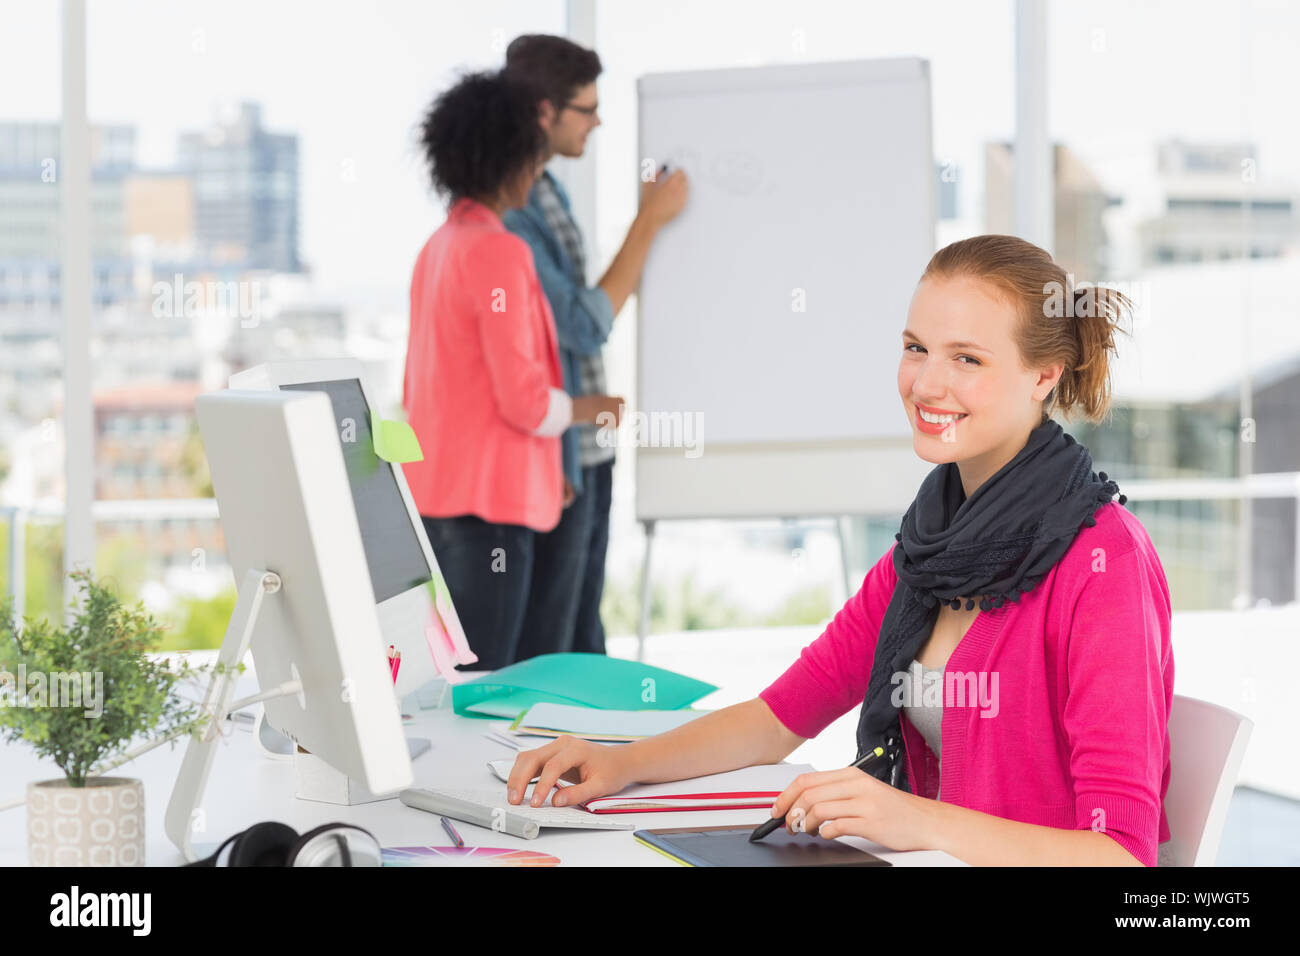 Portrait of a female artist using graphic tablet with colleagues behind at the office Stock Photo